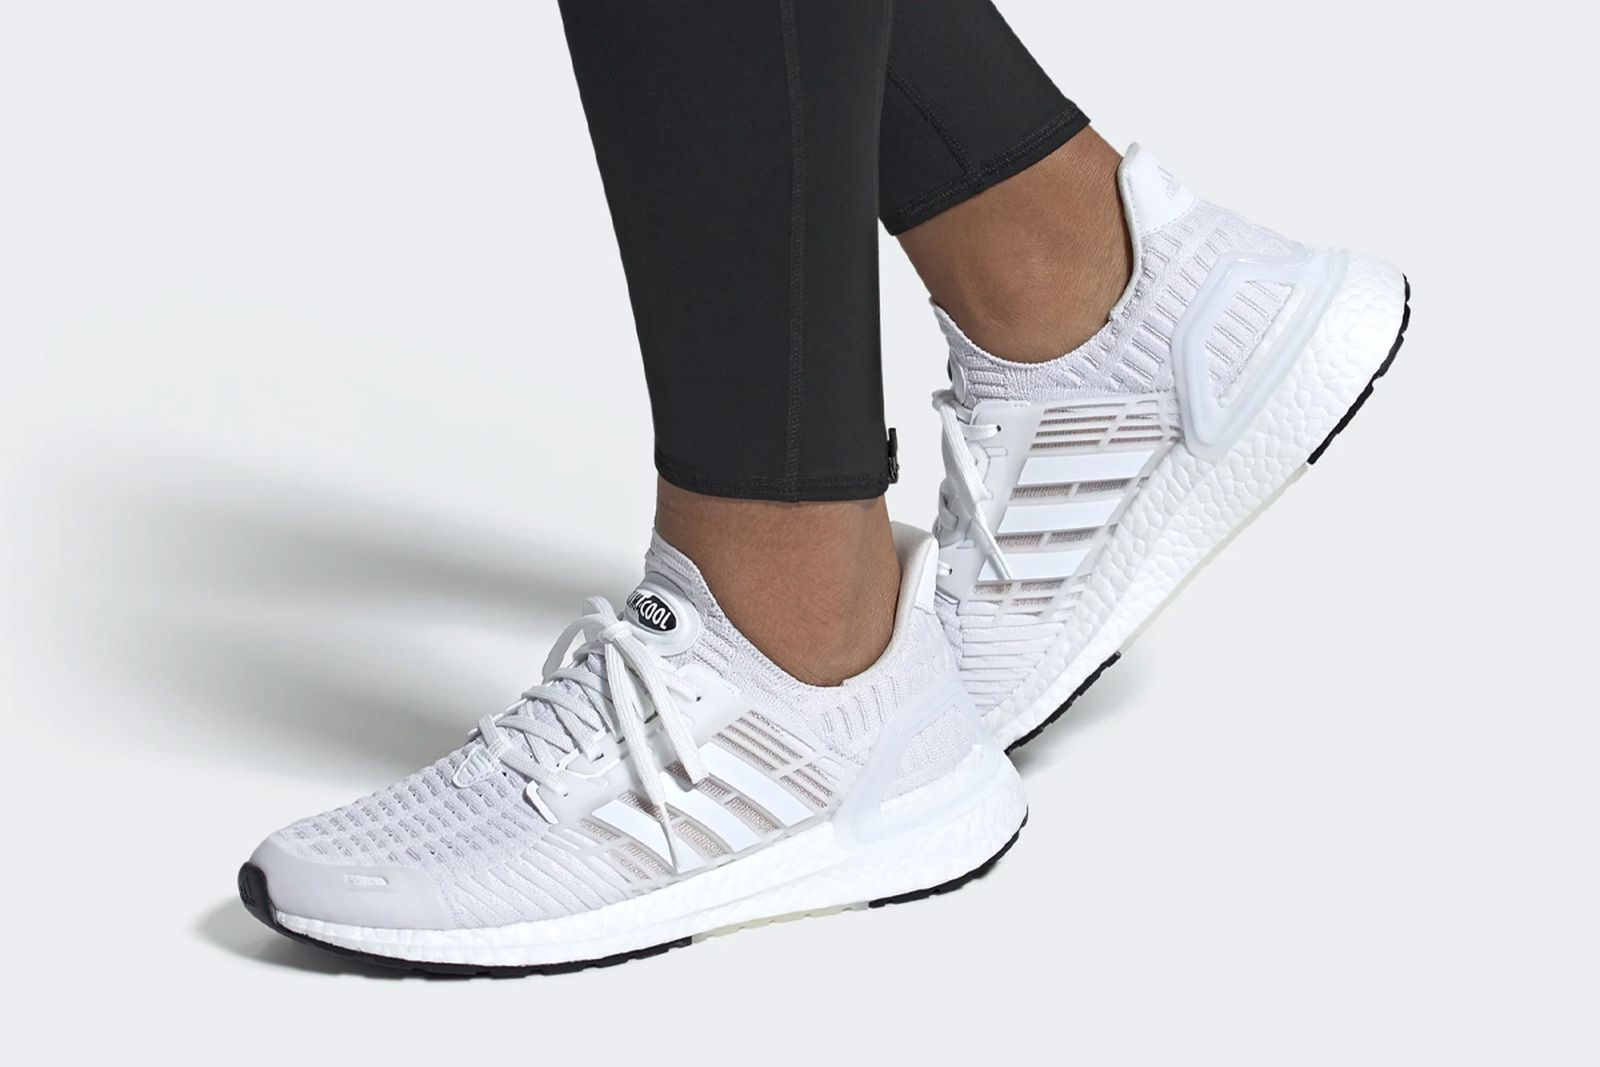 adidas-ultraboost-clima-cool-release-date-price-02